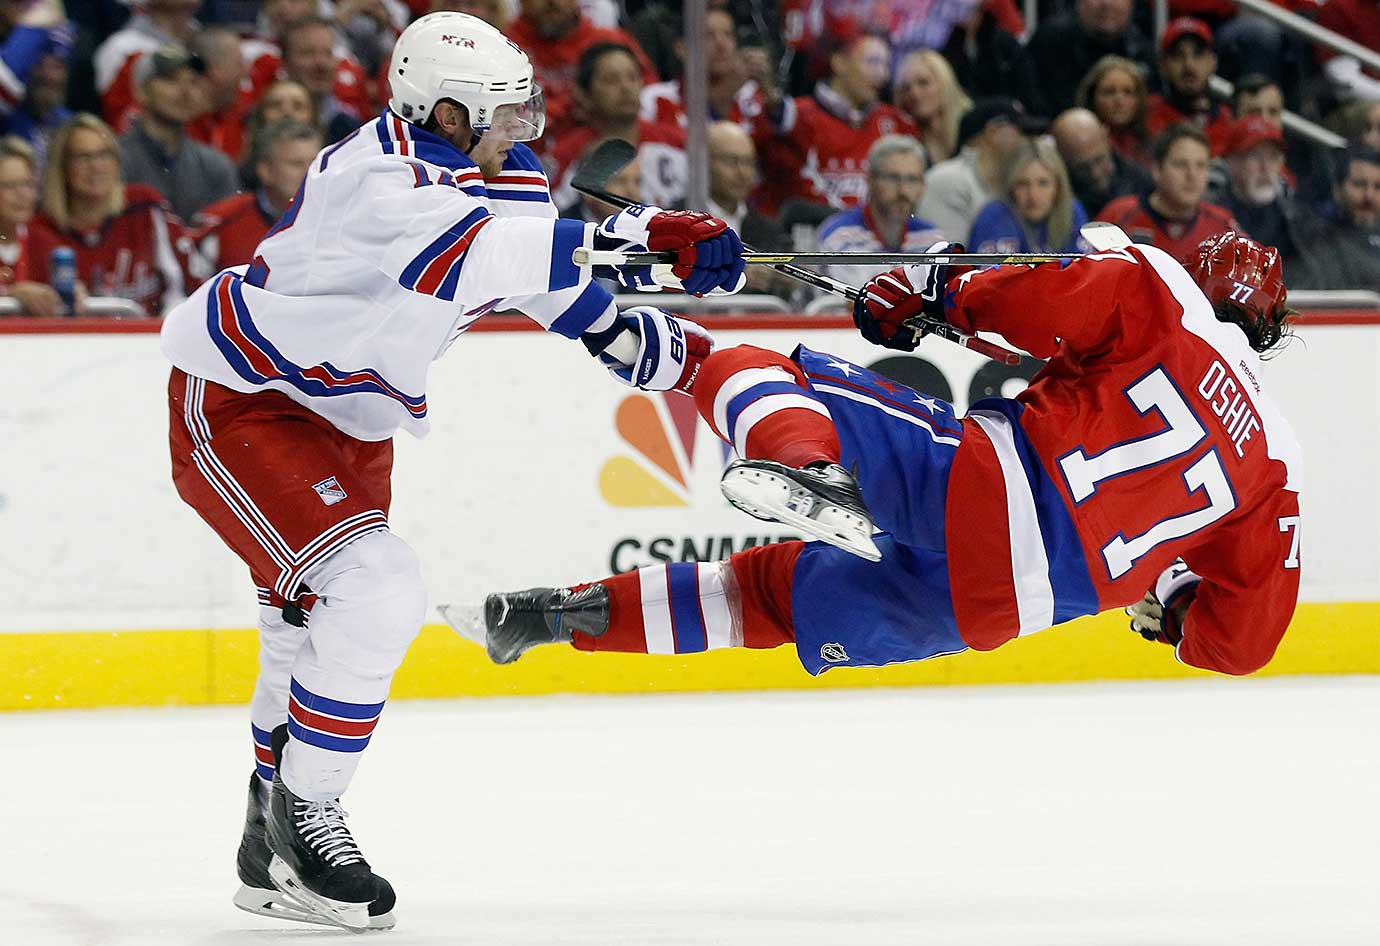 Eric Staal of the New York Rangers checks T.J. Oshie of the Washington Capitals.